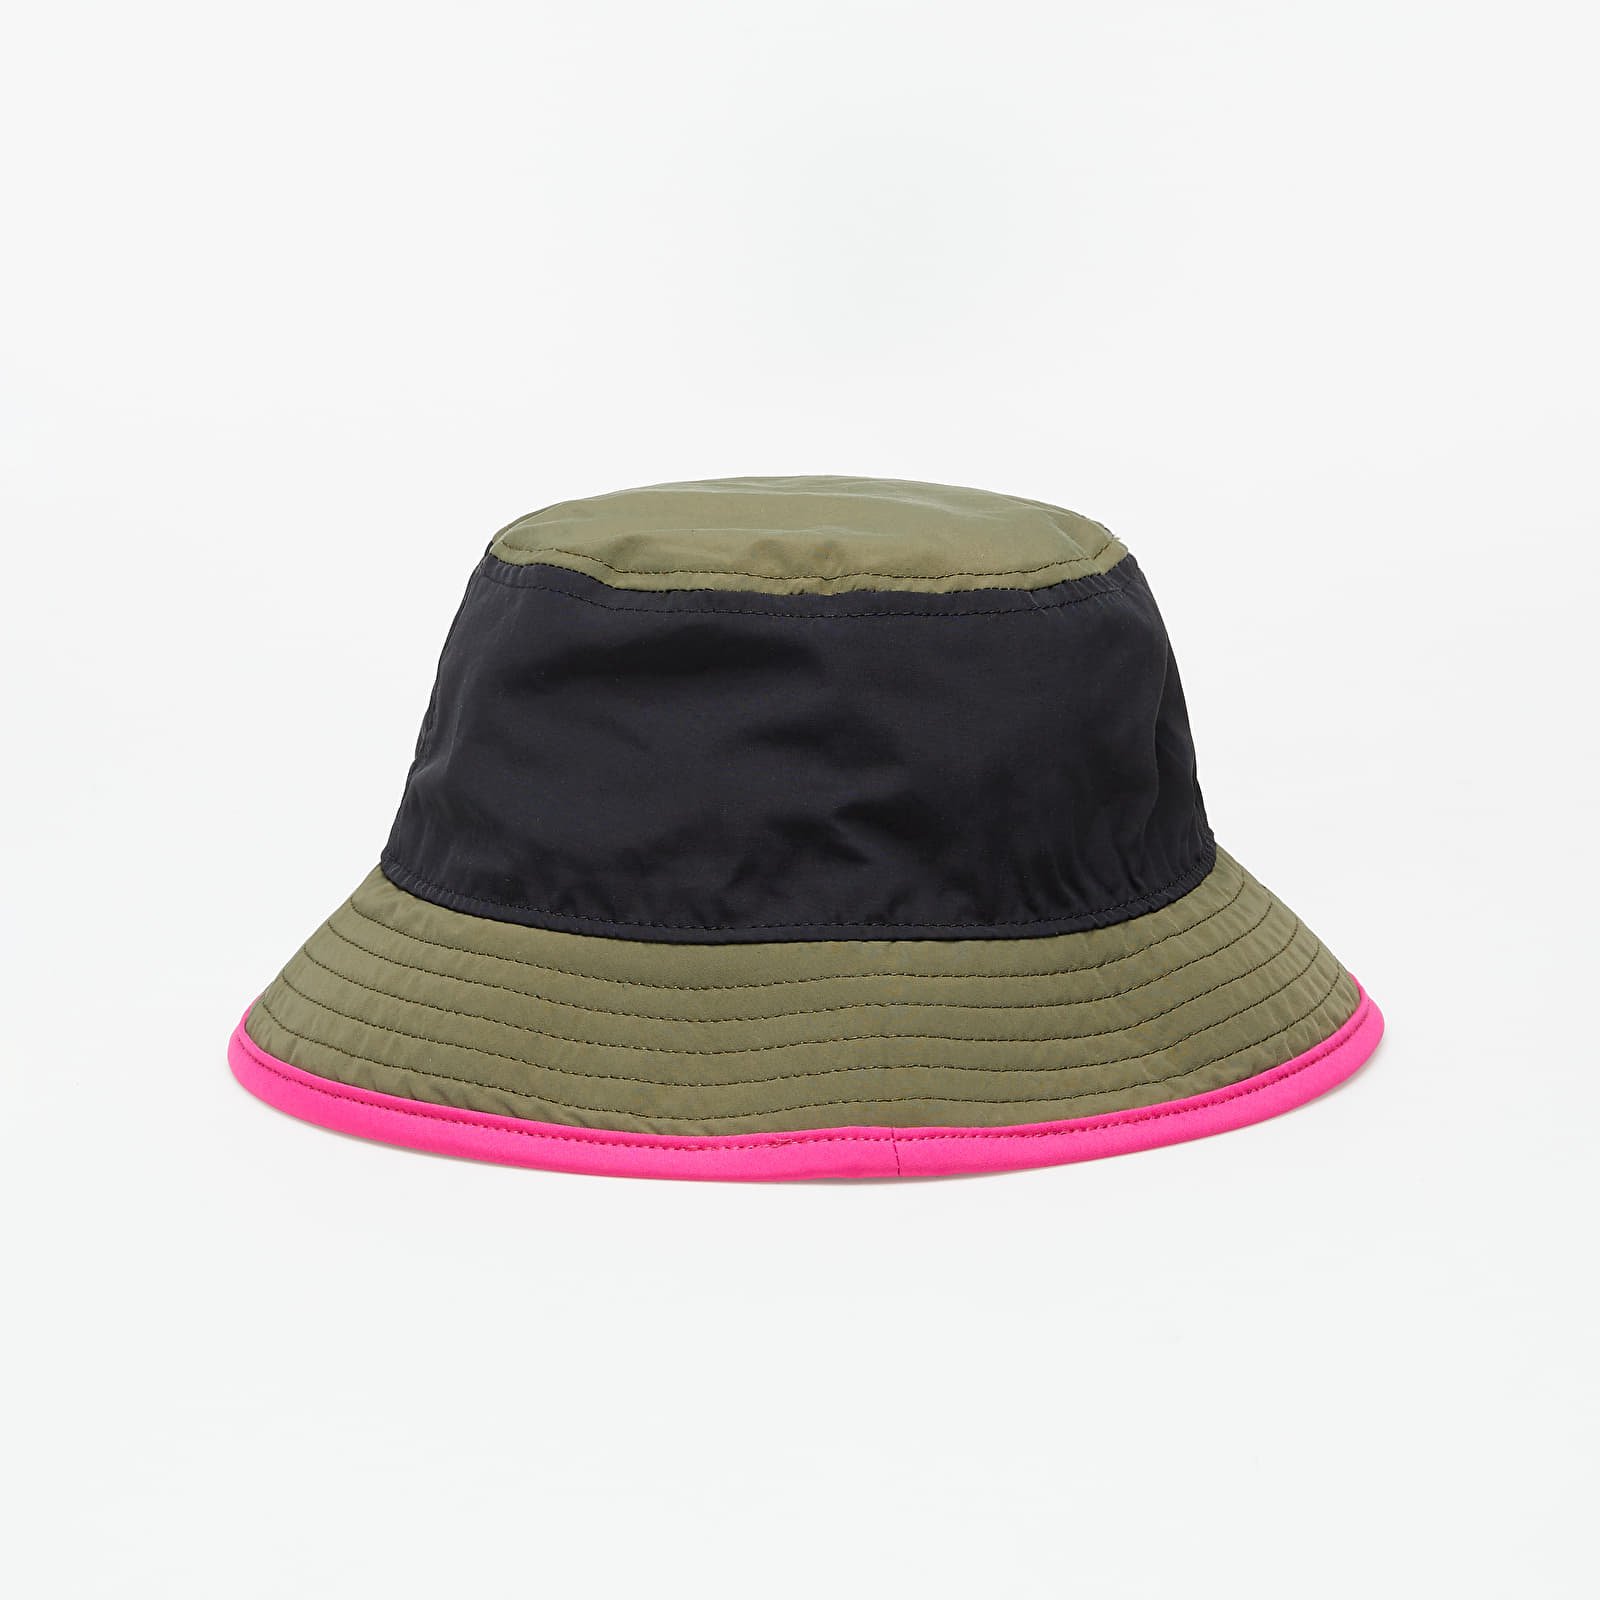 Vans 66 Supply Bucket Hat Black